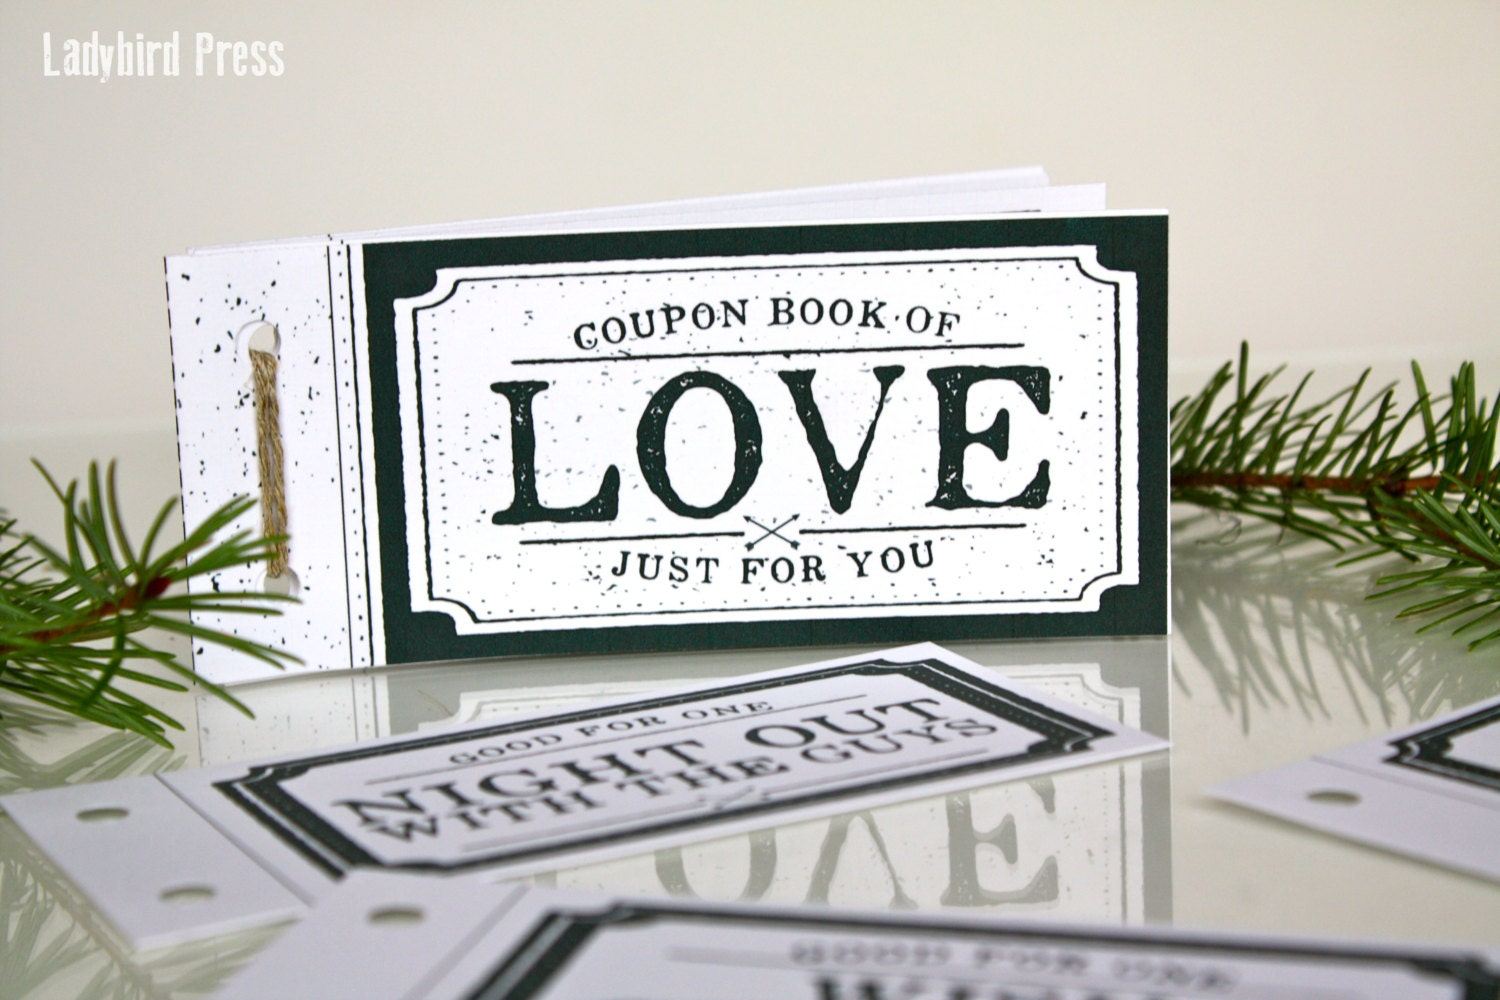 Love coupon book stocking stuffer christmas gift for for Coupon book template for husband